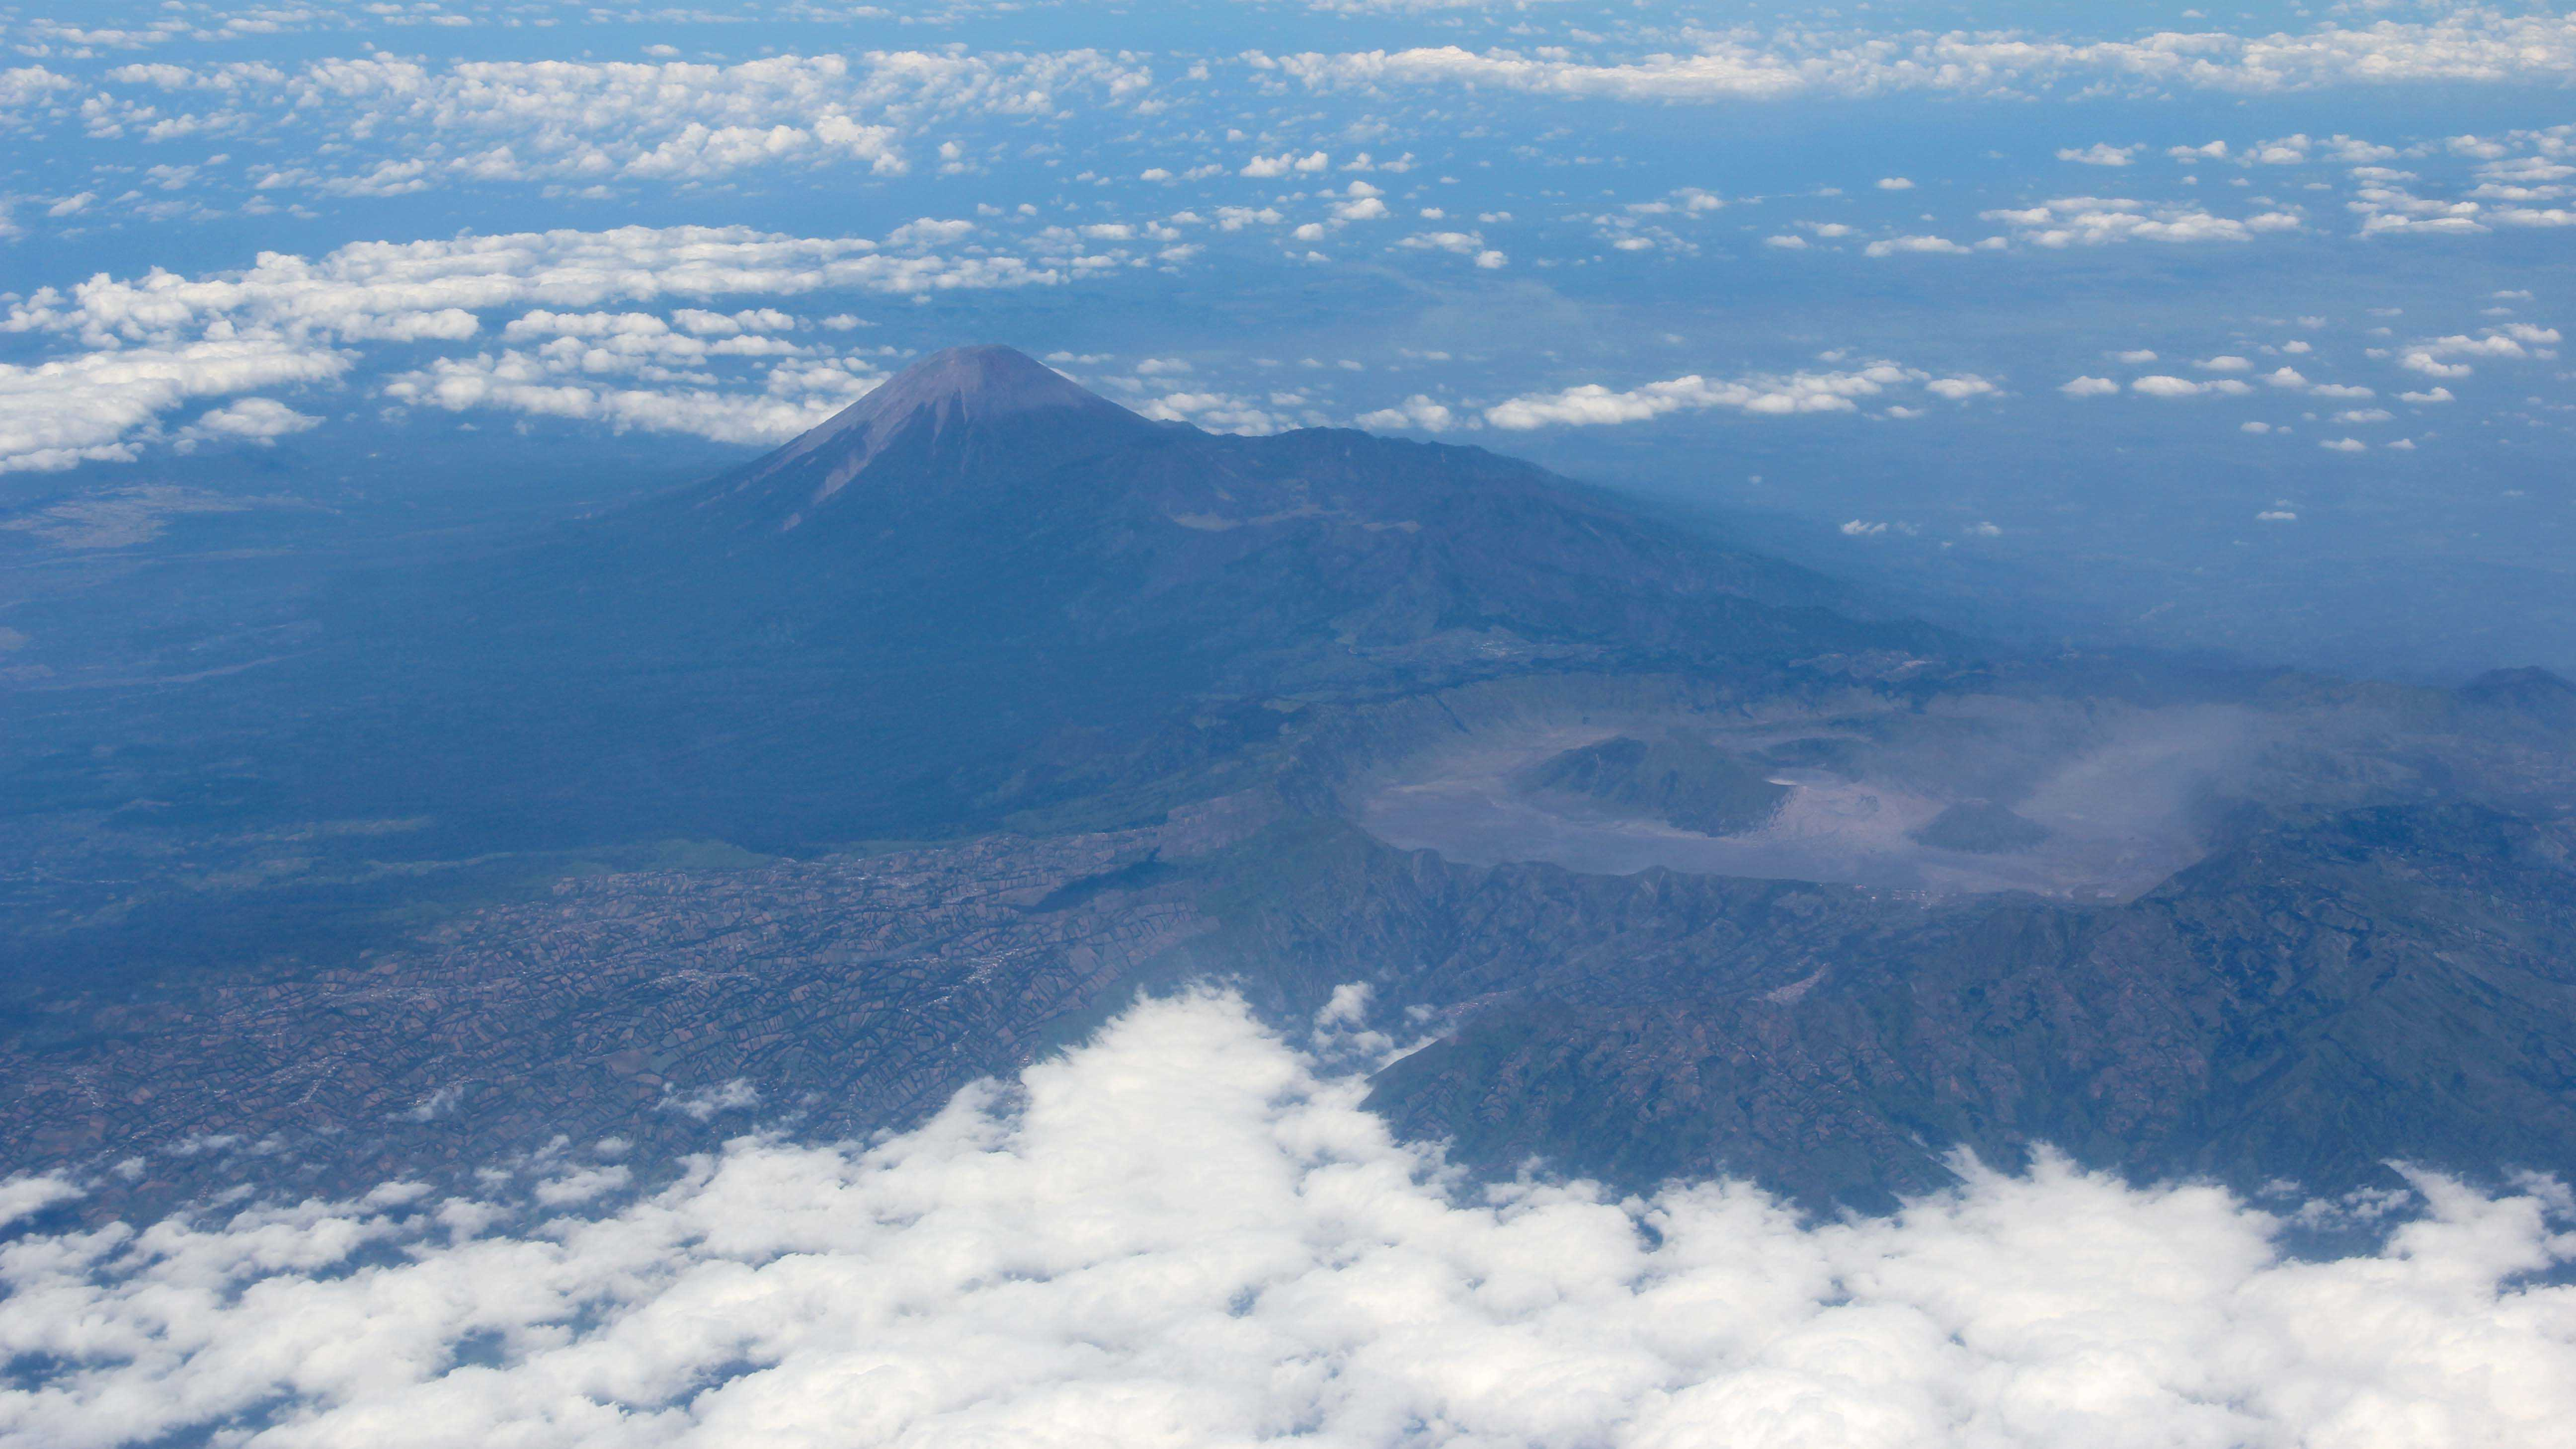 Mount Bromo and Semeru seen from the plane